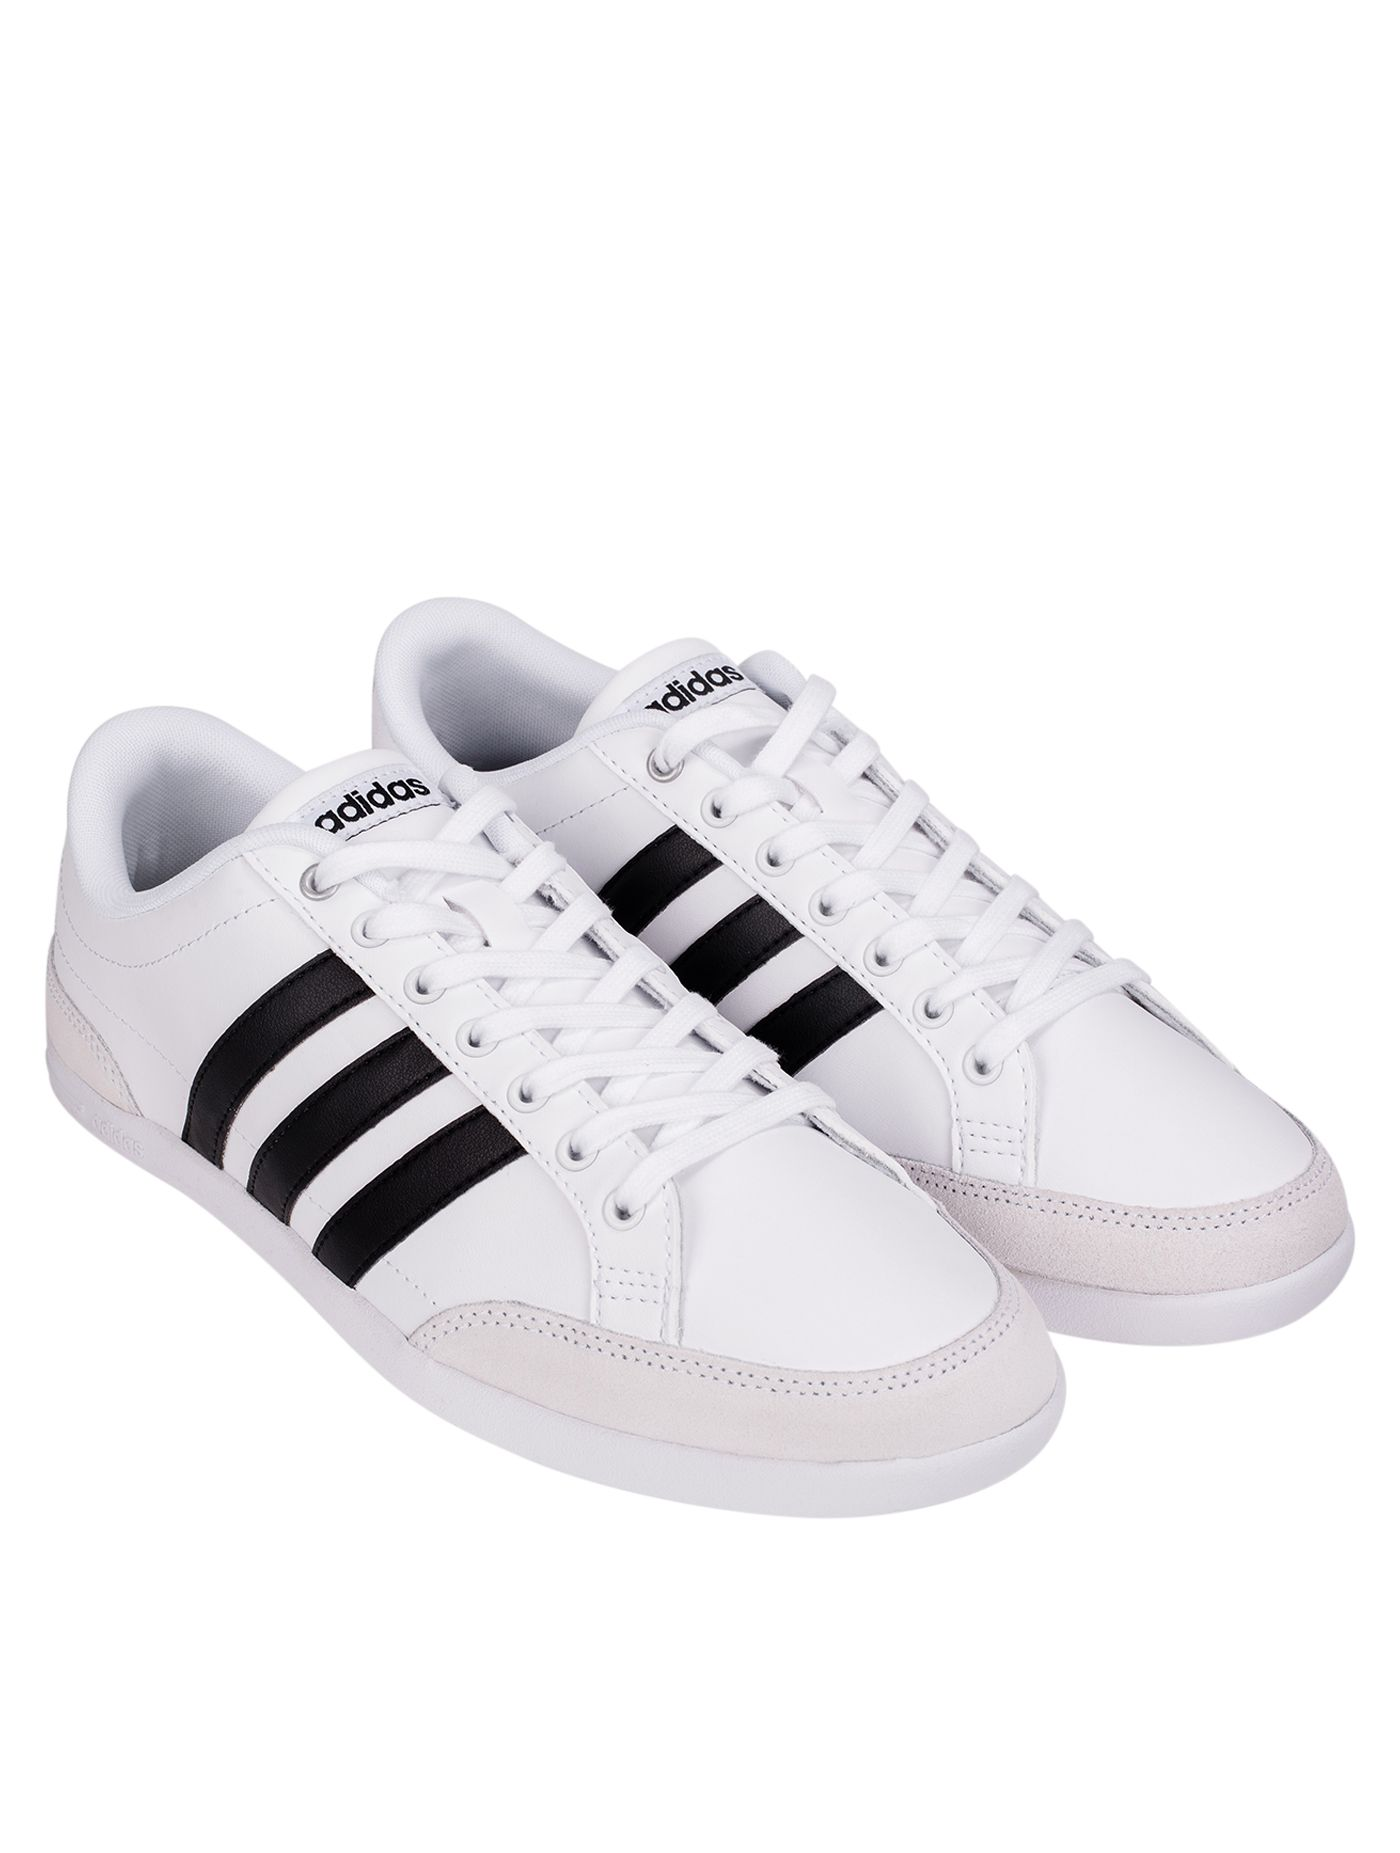 huge discount 31941 7906e ADIDAS NEO Men s Casual shoes CAFLAIRE B74614 Size UK7 White